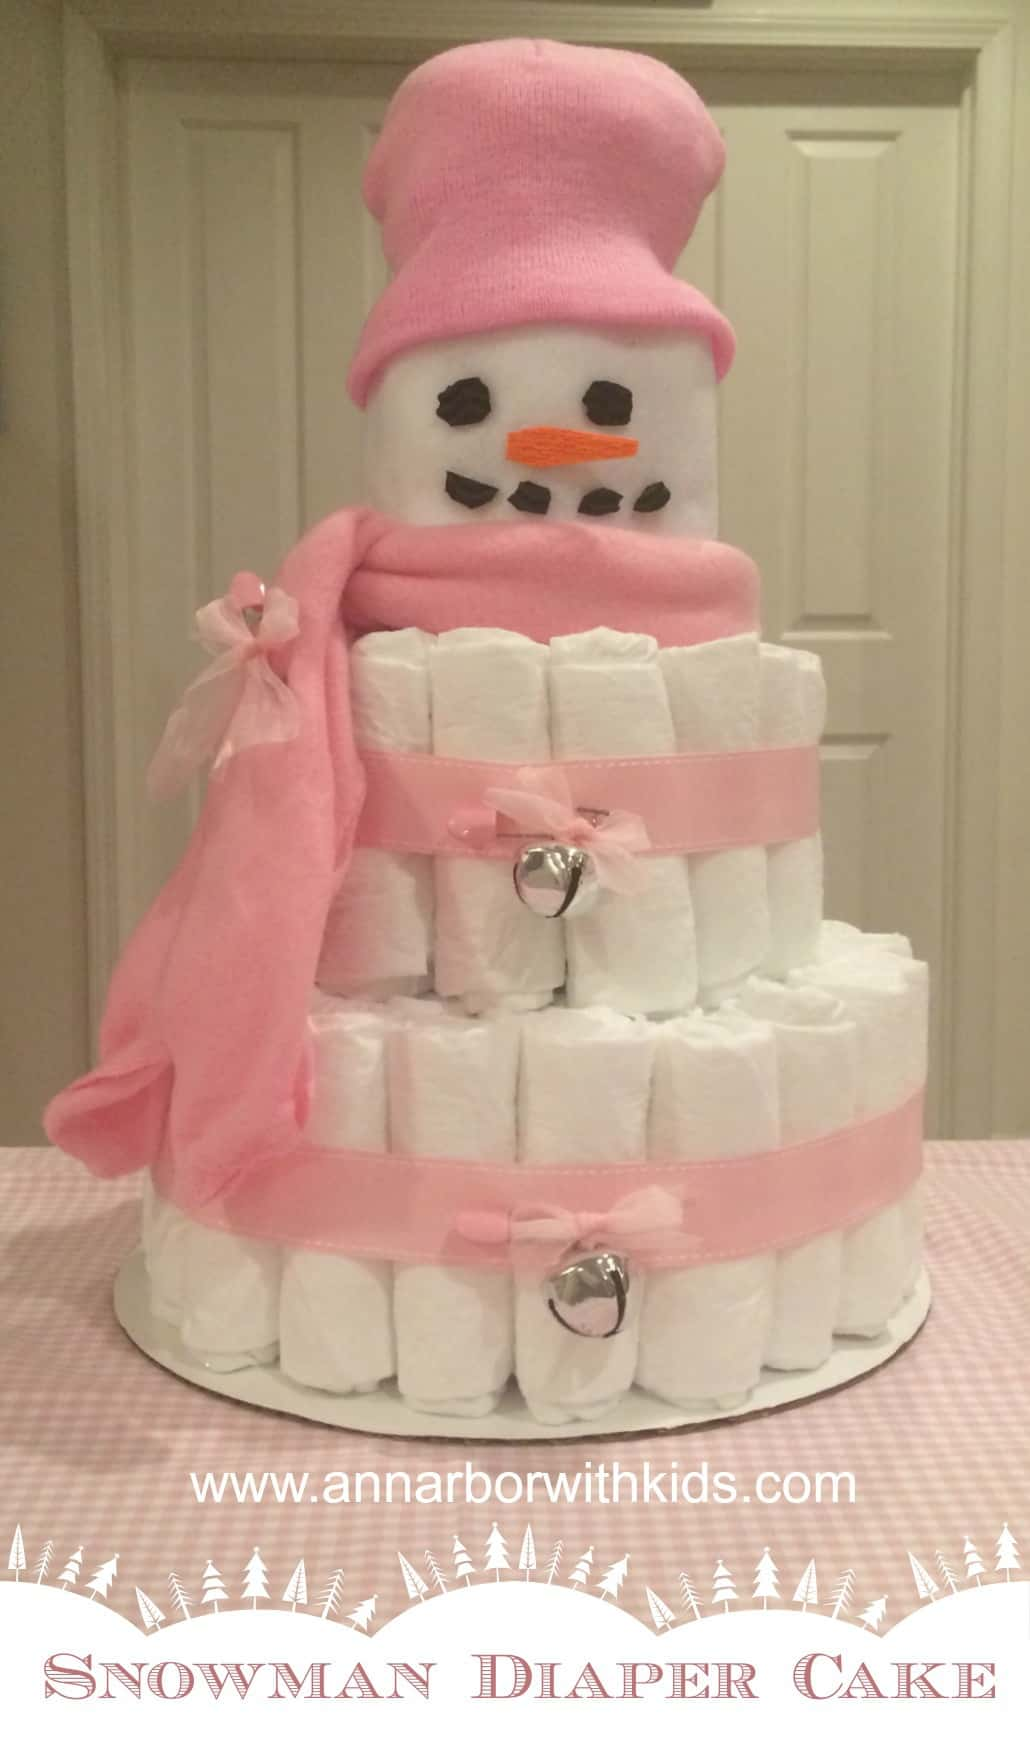 Snowman Diaper Cake Directions. Simple Birth Plan Template. Make A Facebook Banner. Medical School Graduation Gift Ideas. Contractor Invoice Template Excel. Free Printable Birthday Coupons Template. Wedding Church Program Template. Free Fax Coversheet Template. Memorial Service Invitations Template